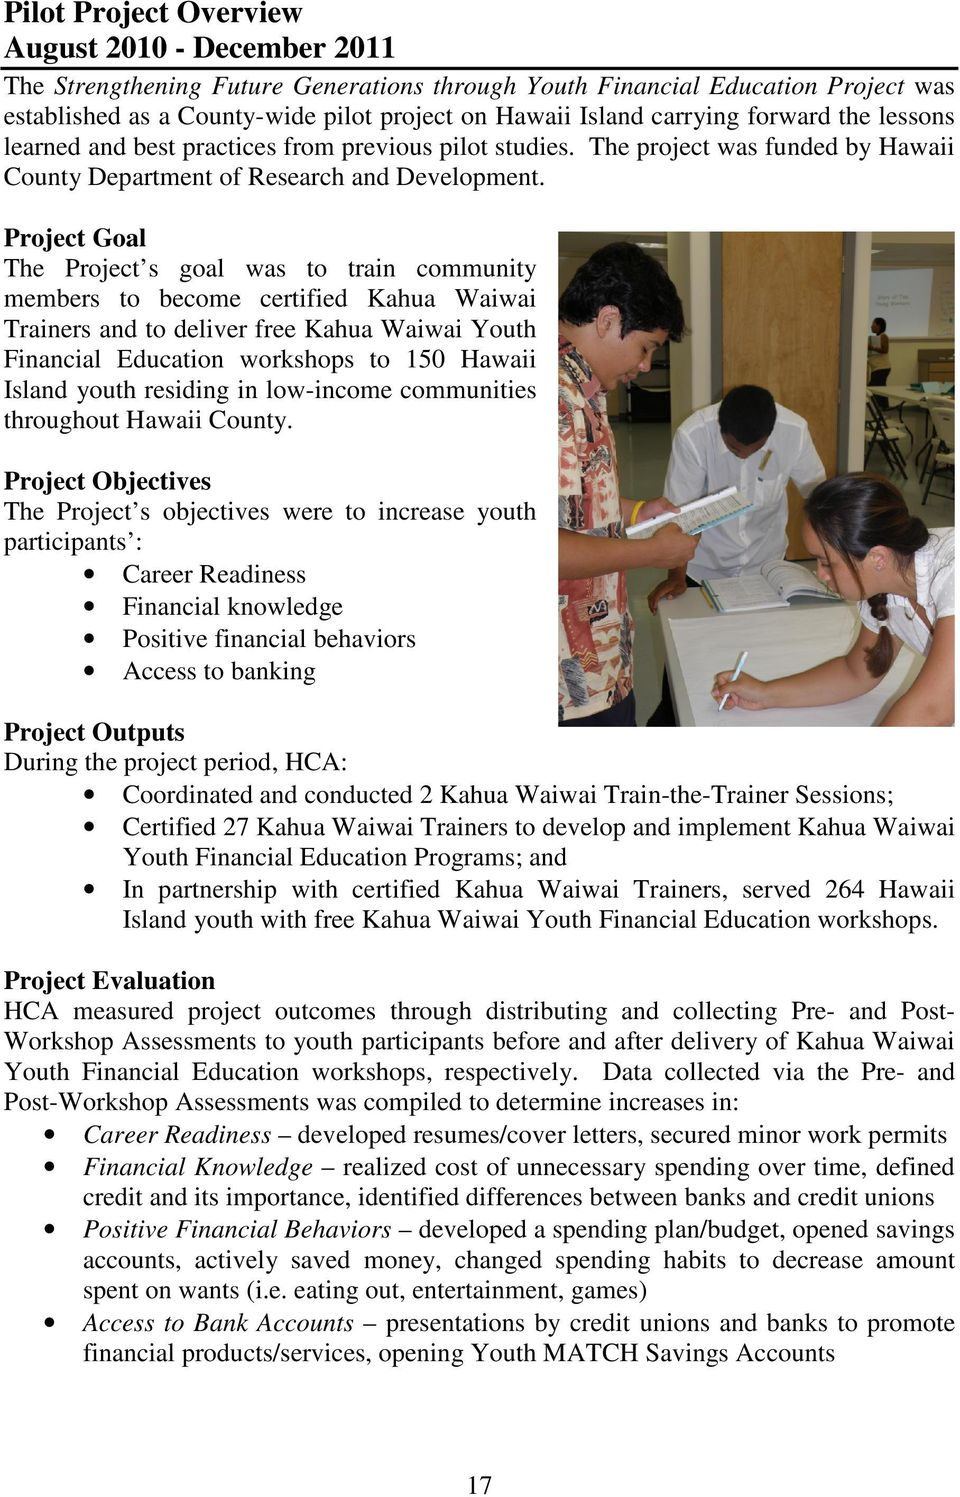 Project Goal The Project s goal was to train community members to become certified Kahua Waiwai Trainers and to deliver free Kahua Waiwai Youth Financial Education workshops to 150 Hawaii Island